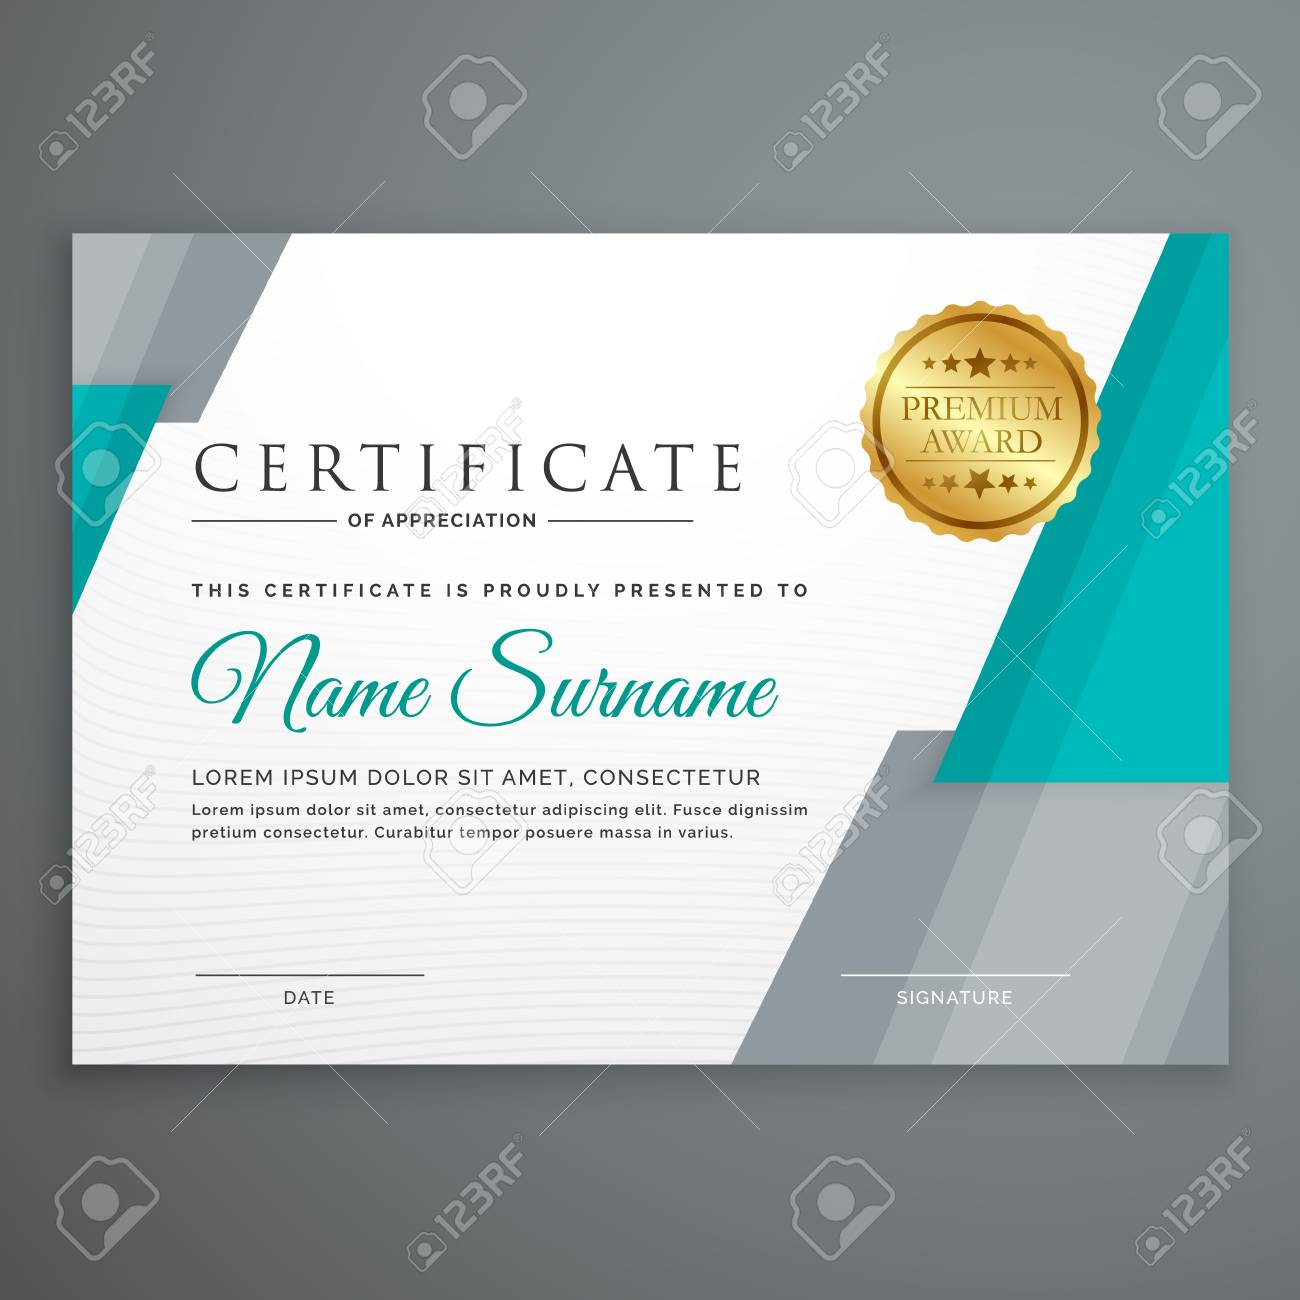 Stylish Certificate Template Design With Geometric Shapes Royalty